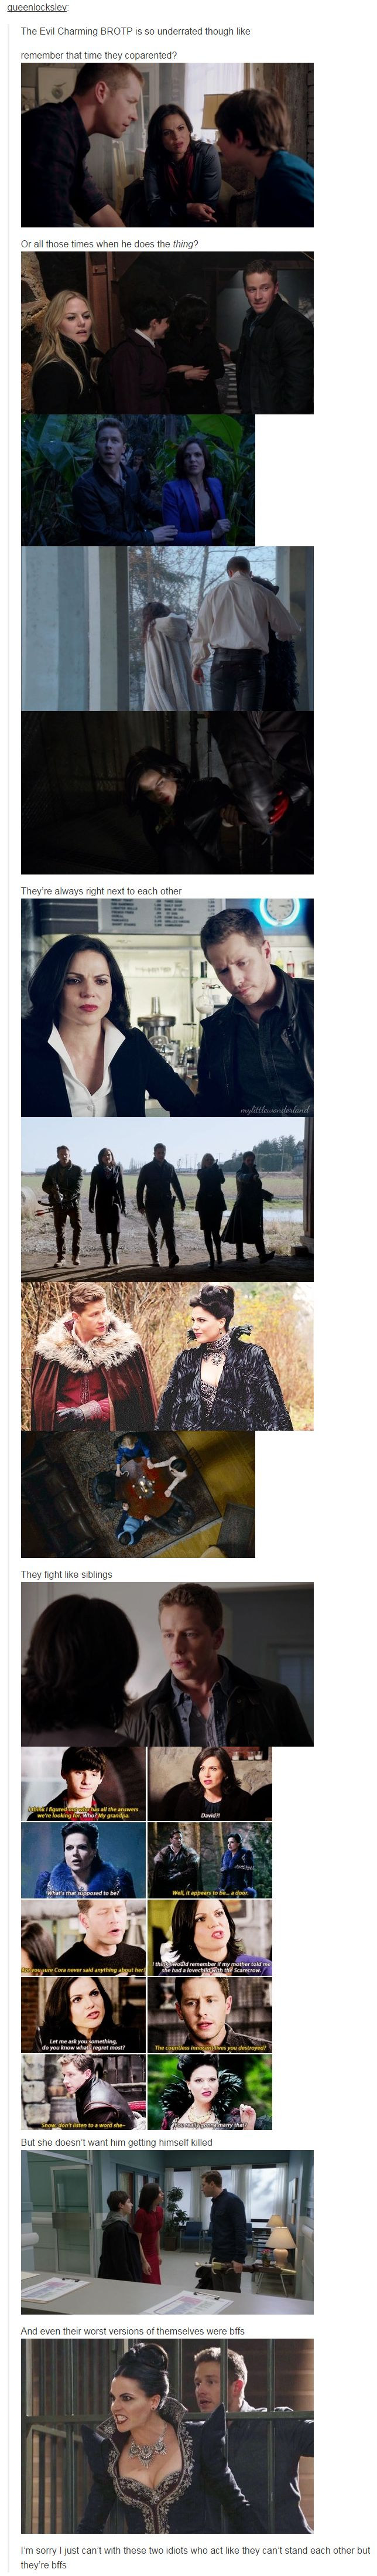 best images about once upon a time it was love at first sight evilcharming brotp xd dying